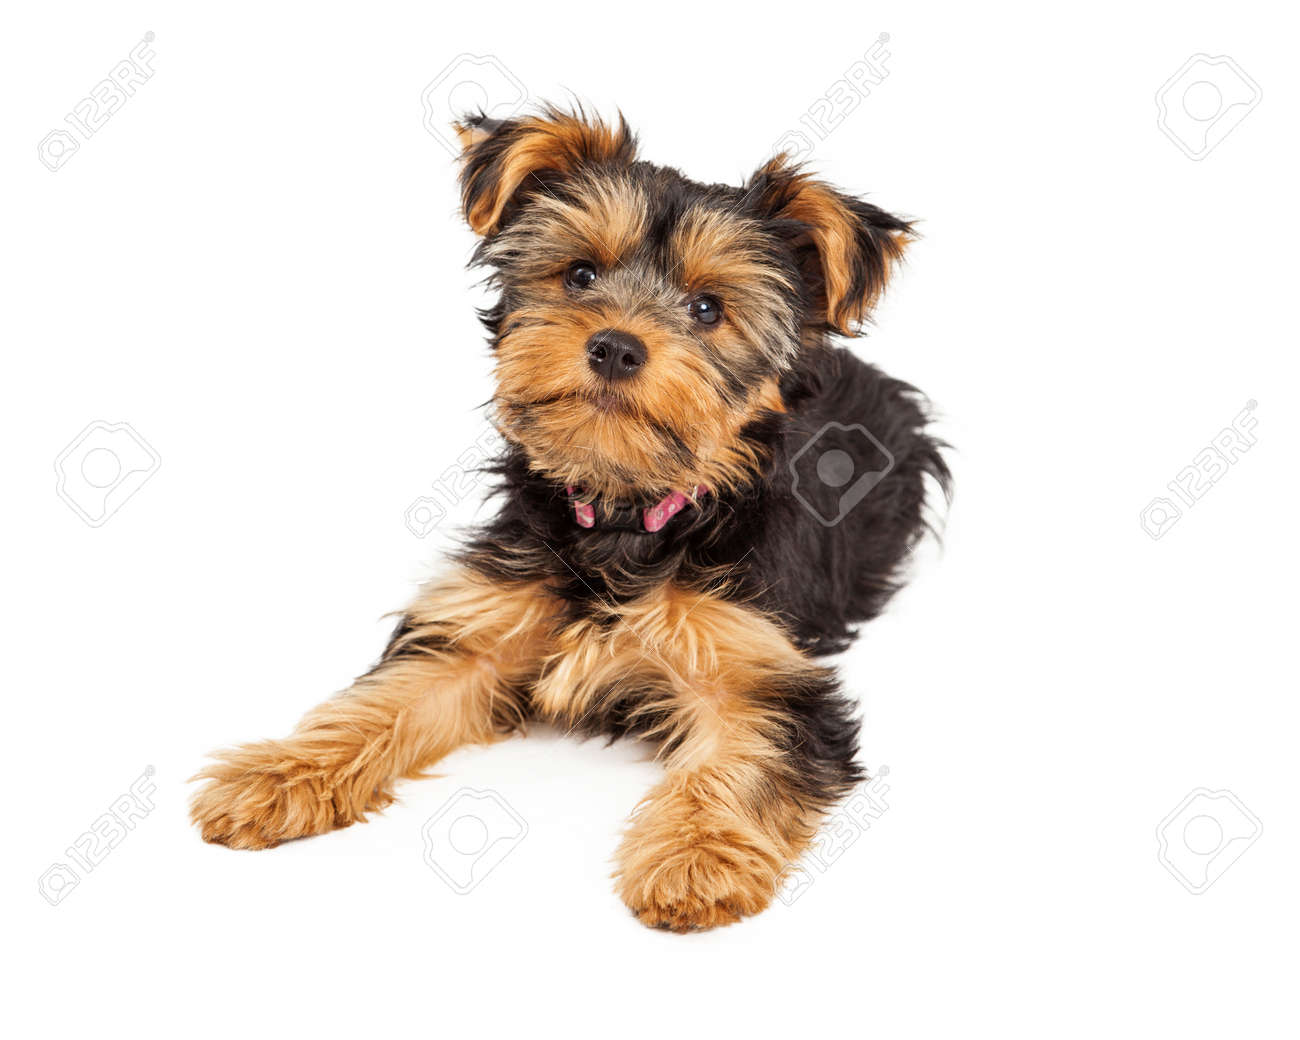 A Cute Little Teacup Yorkie Puppy Dog Laying Down And Looking